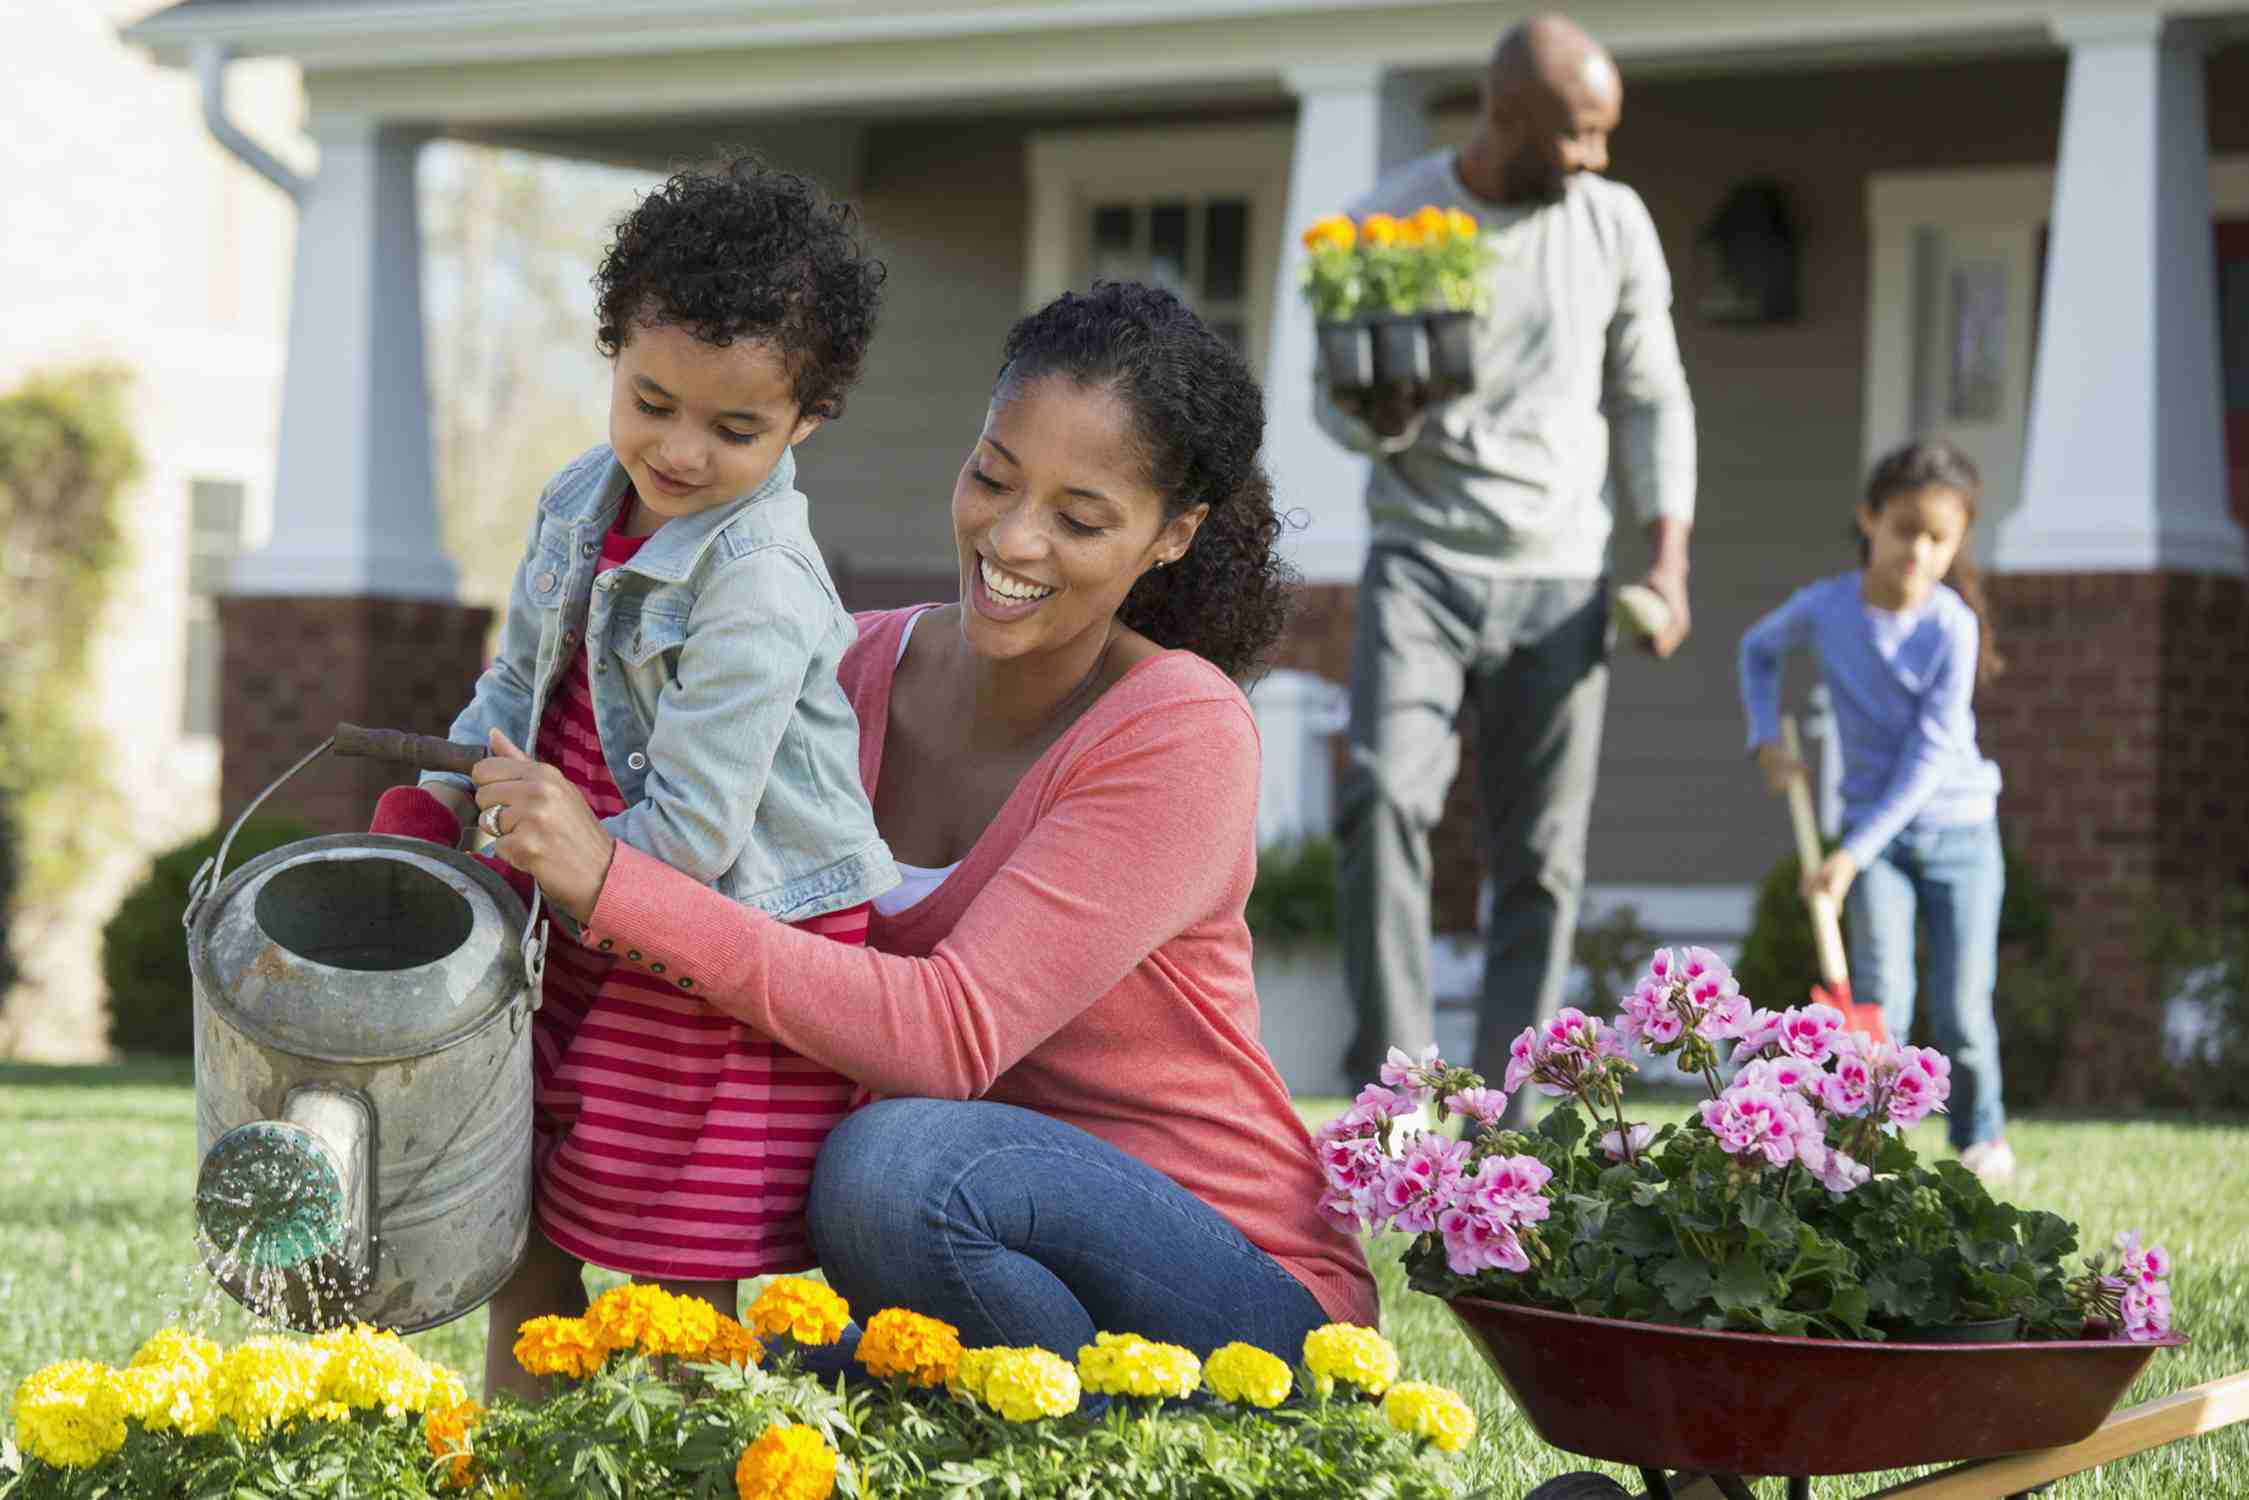 A picture of a mom and daughter gardening